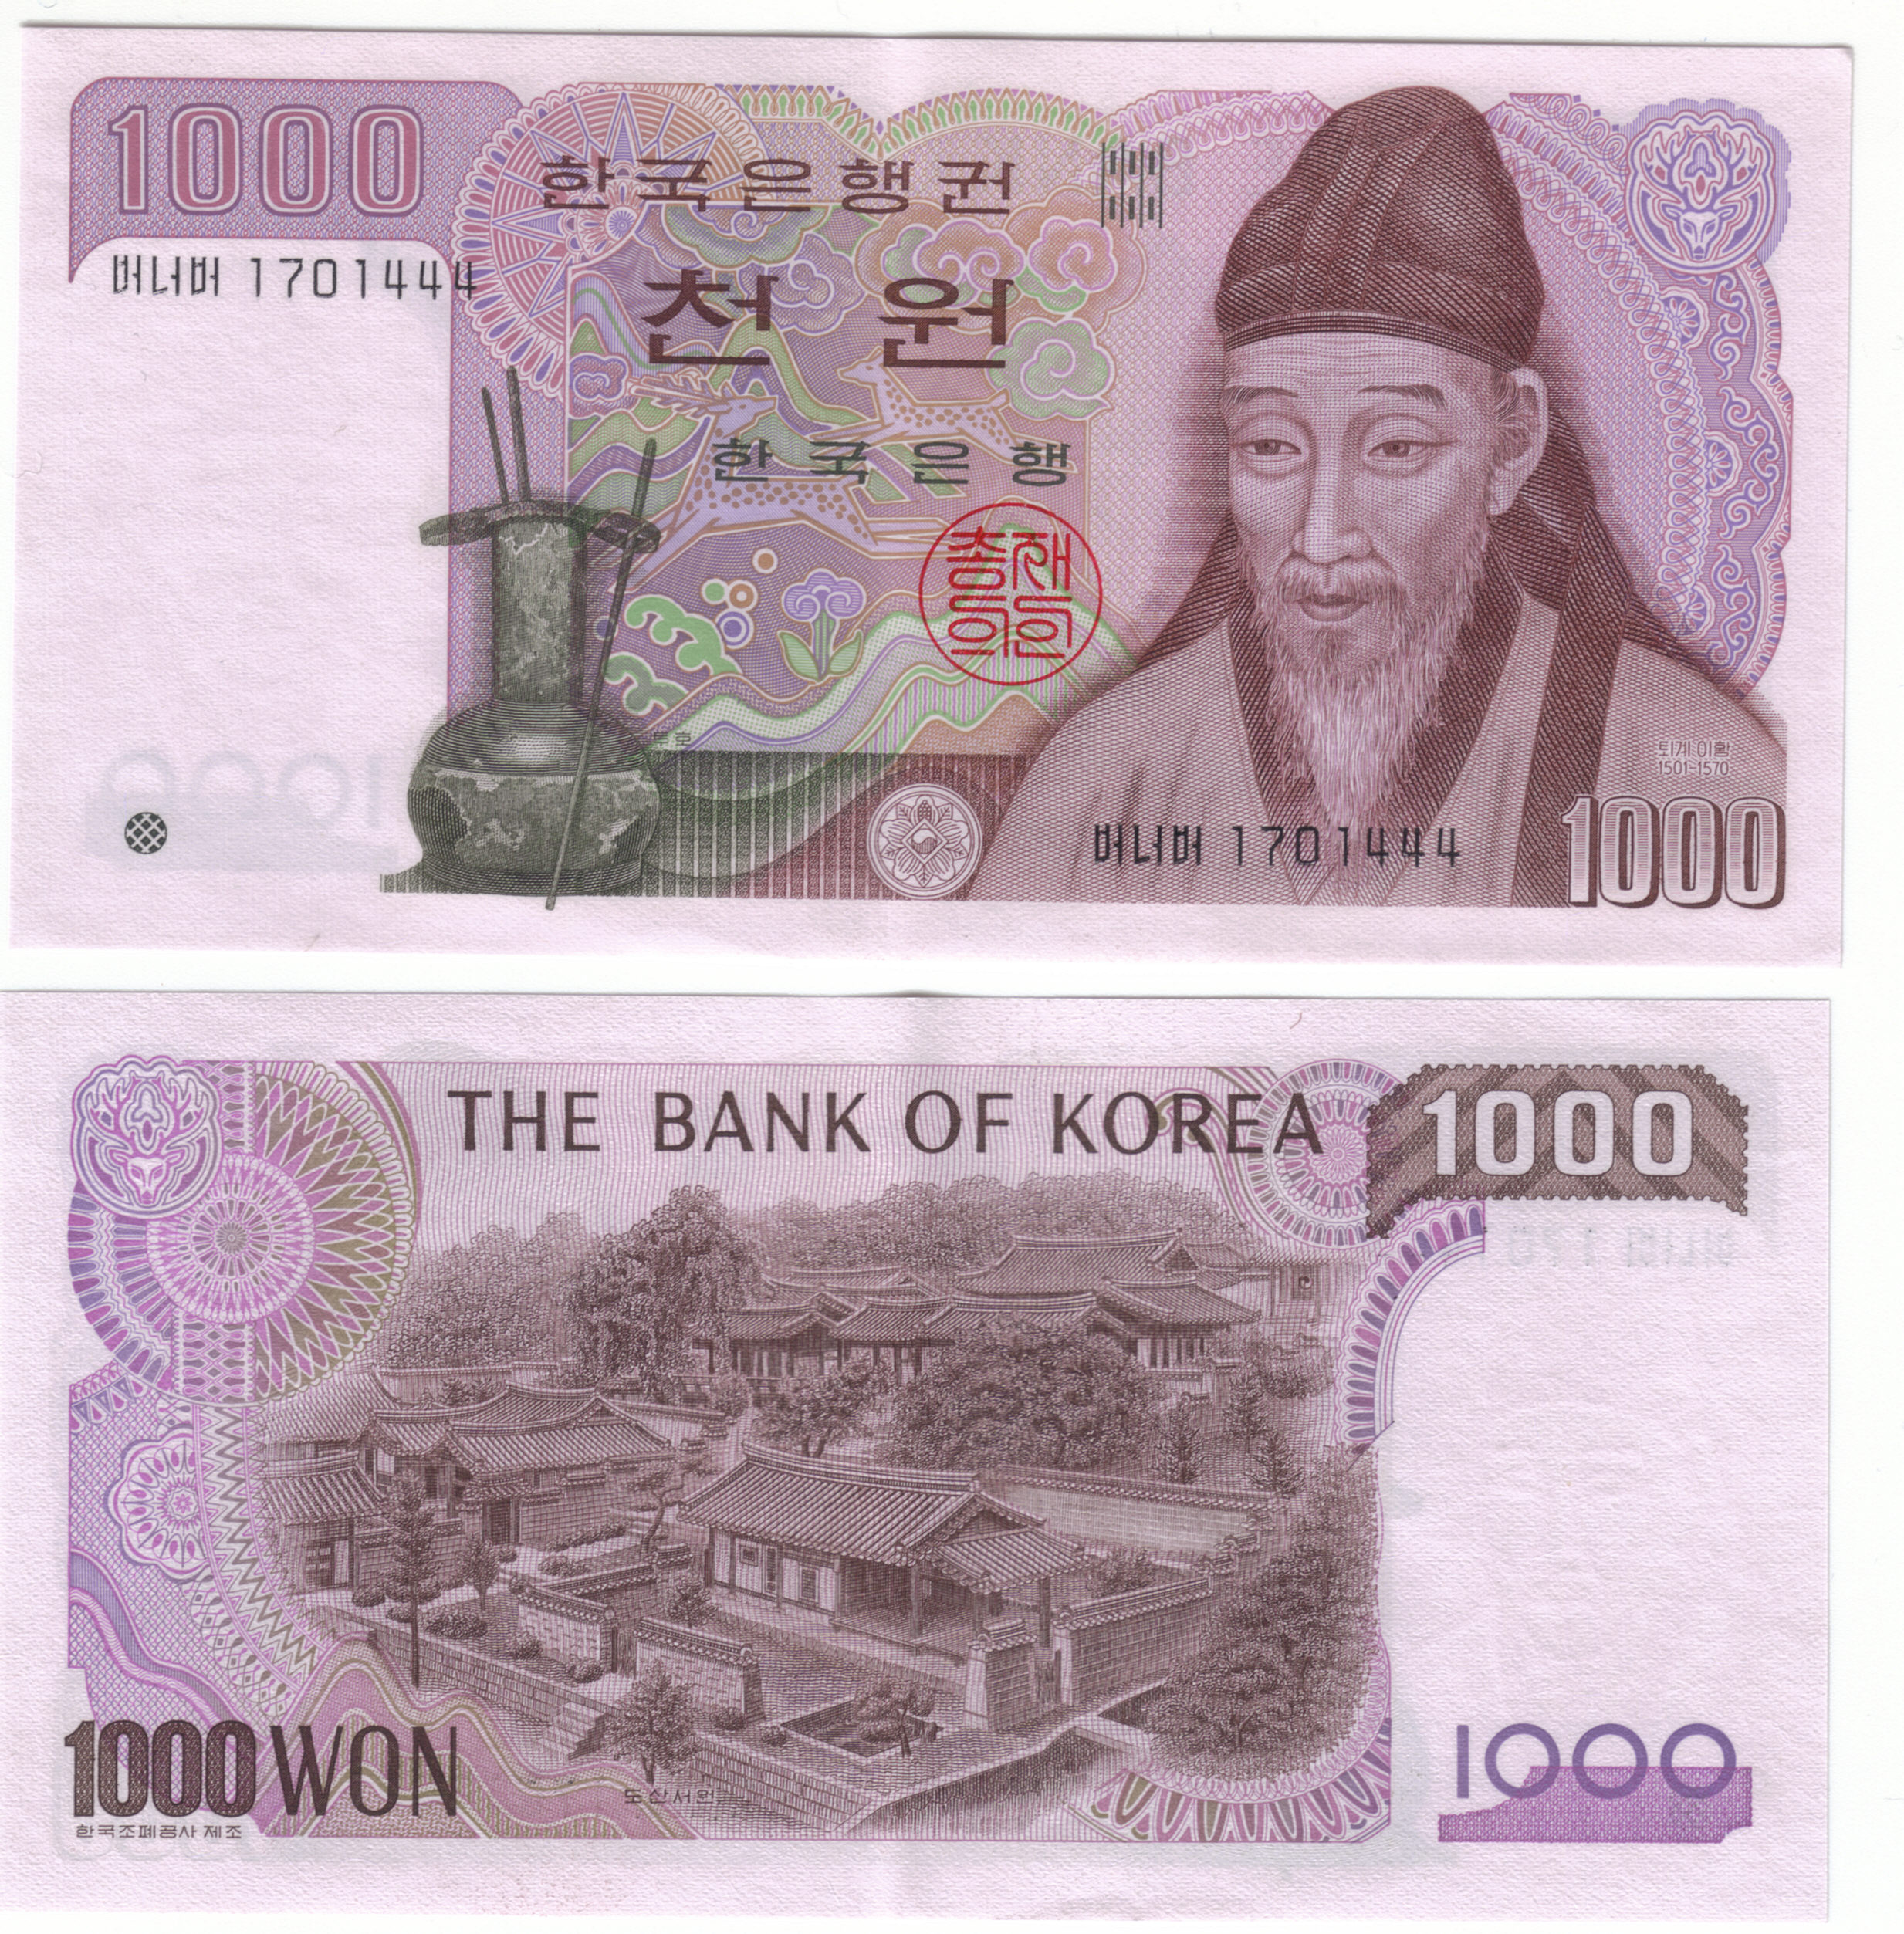 Korean Currency 1000 Won In Usd Viecifootpky Cf